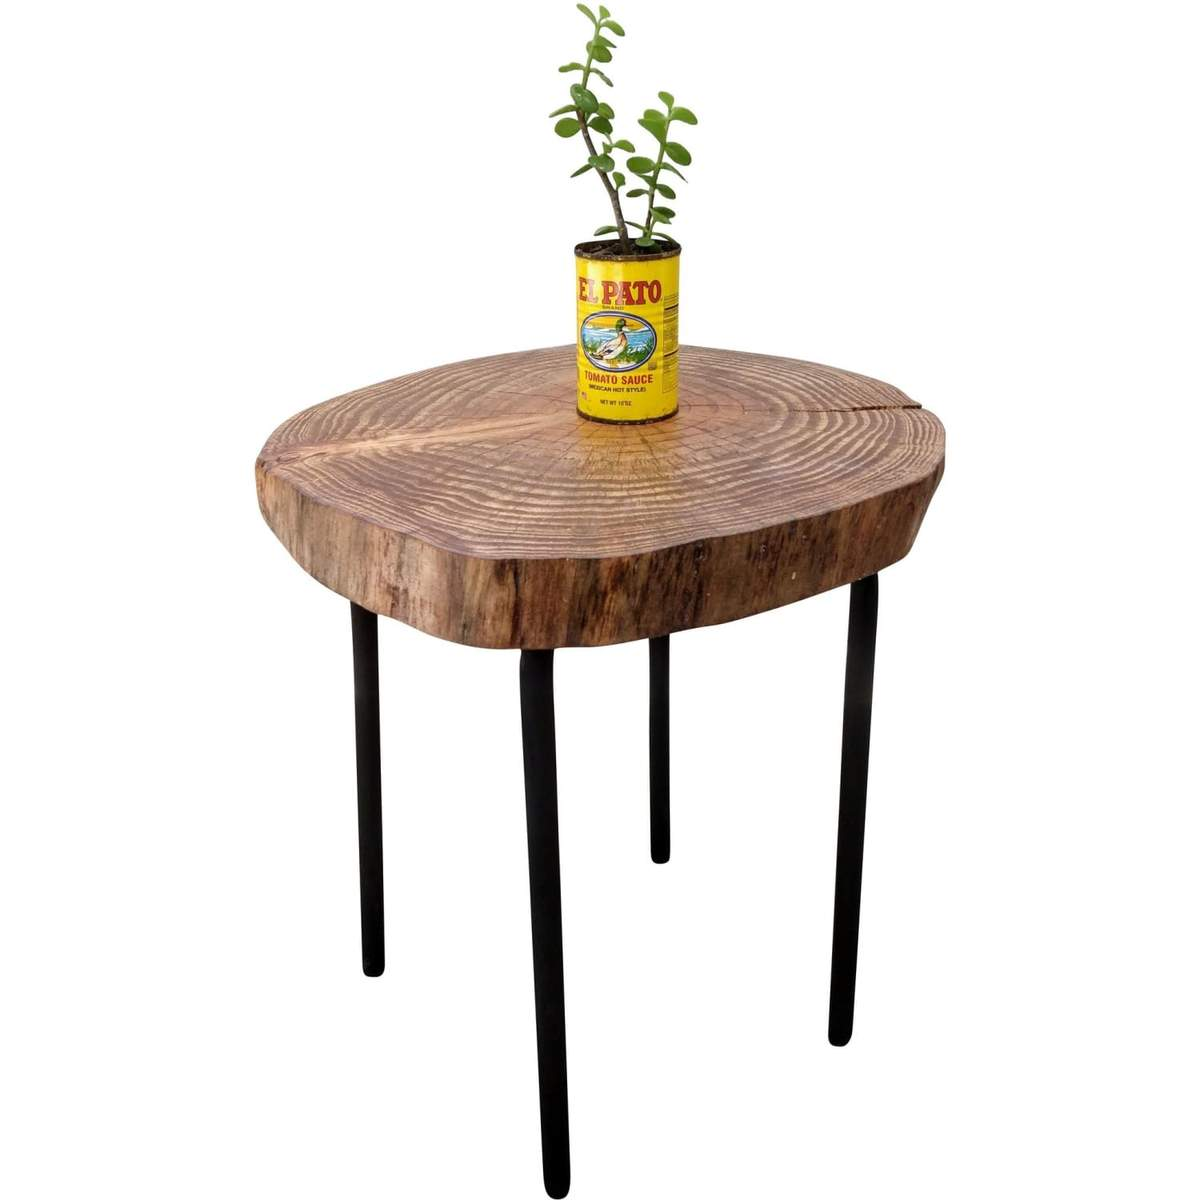 tree log accent table rustics wood white folding outdoor side farm dining set chinese bedside lamps fire pit antique tall brass frame coffee modern occasional tables entryway